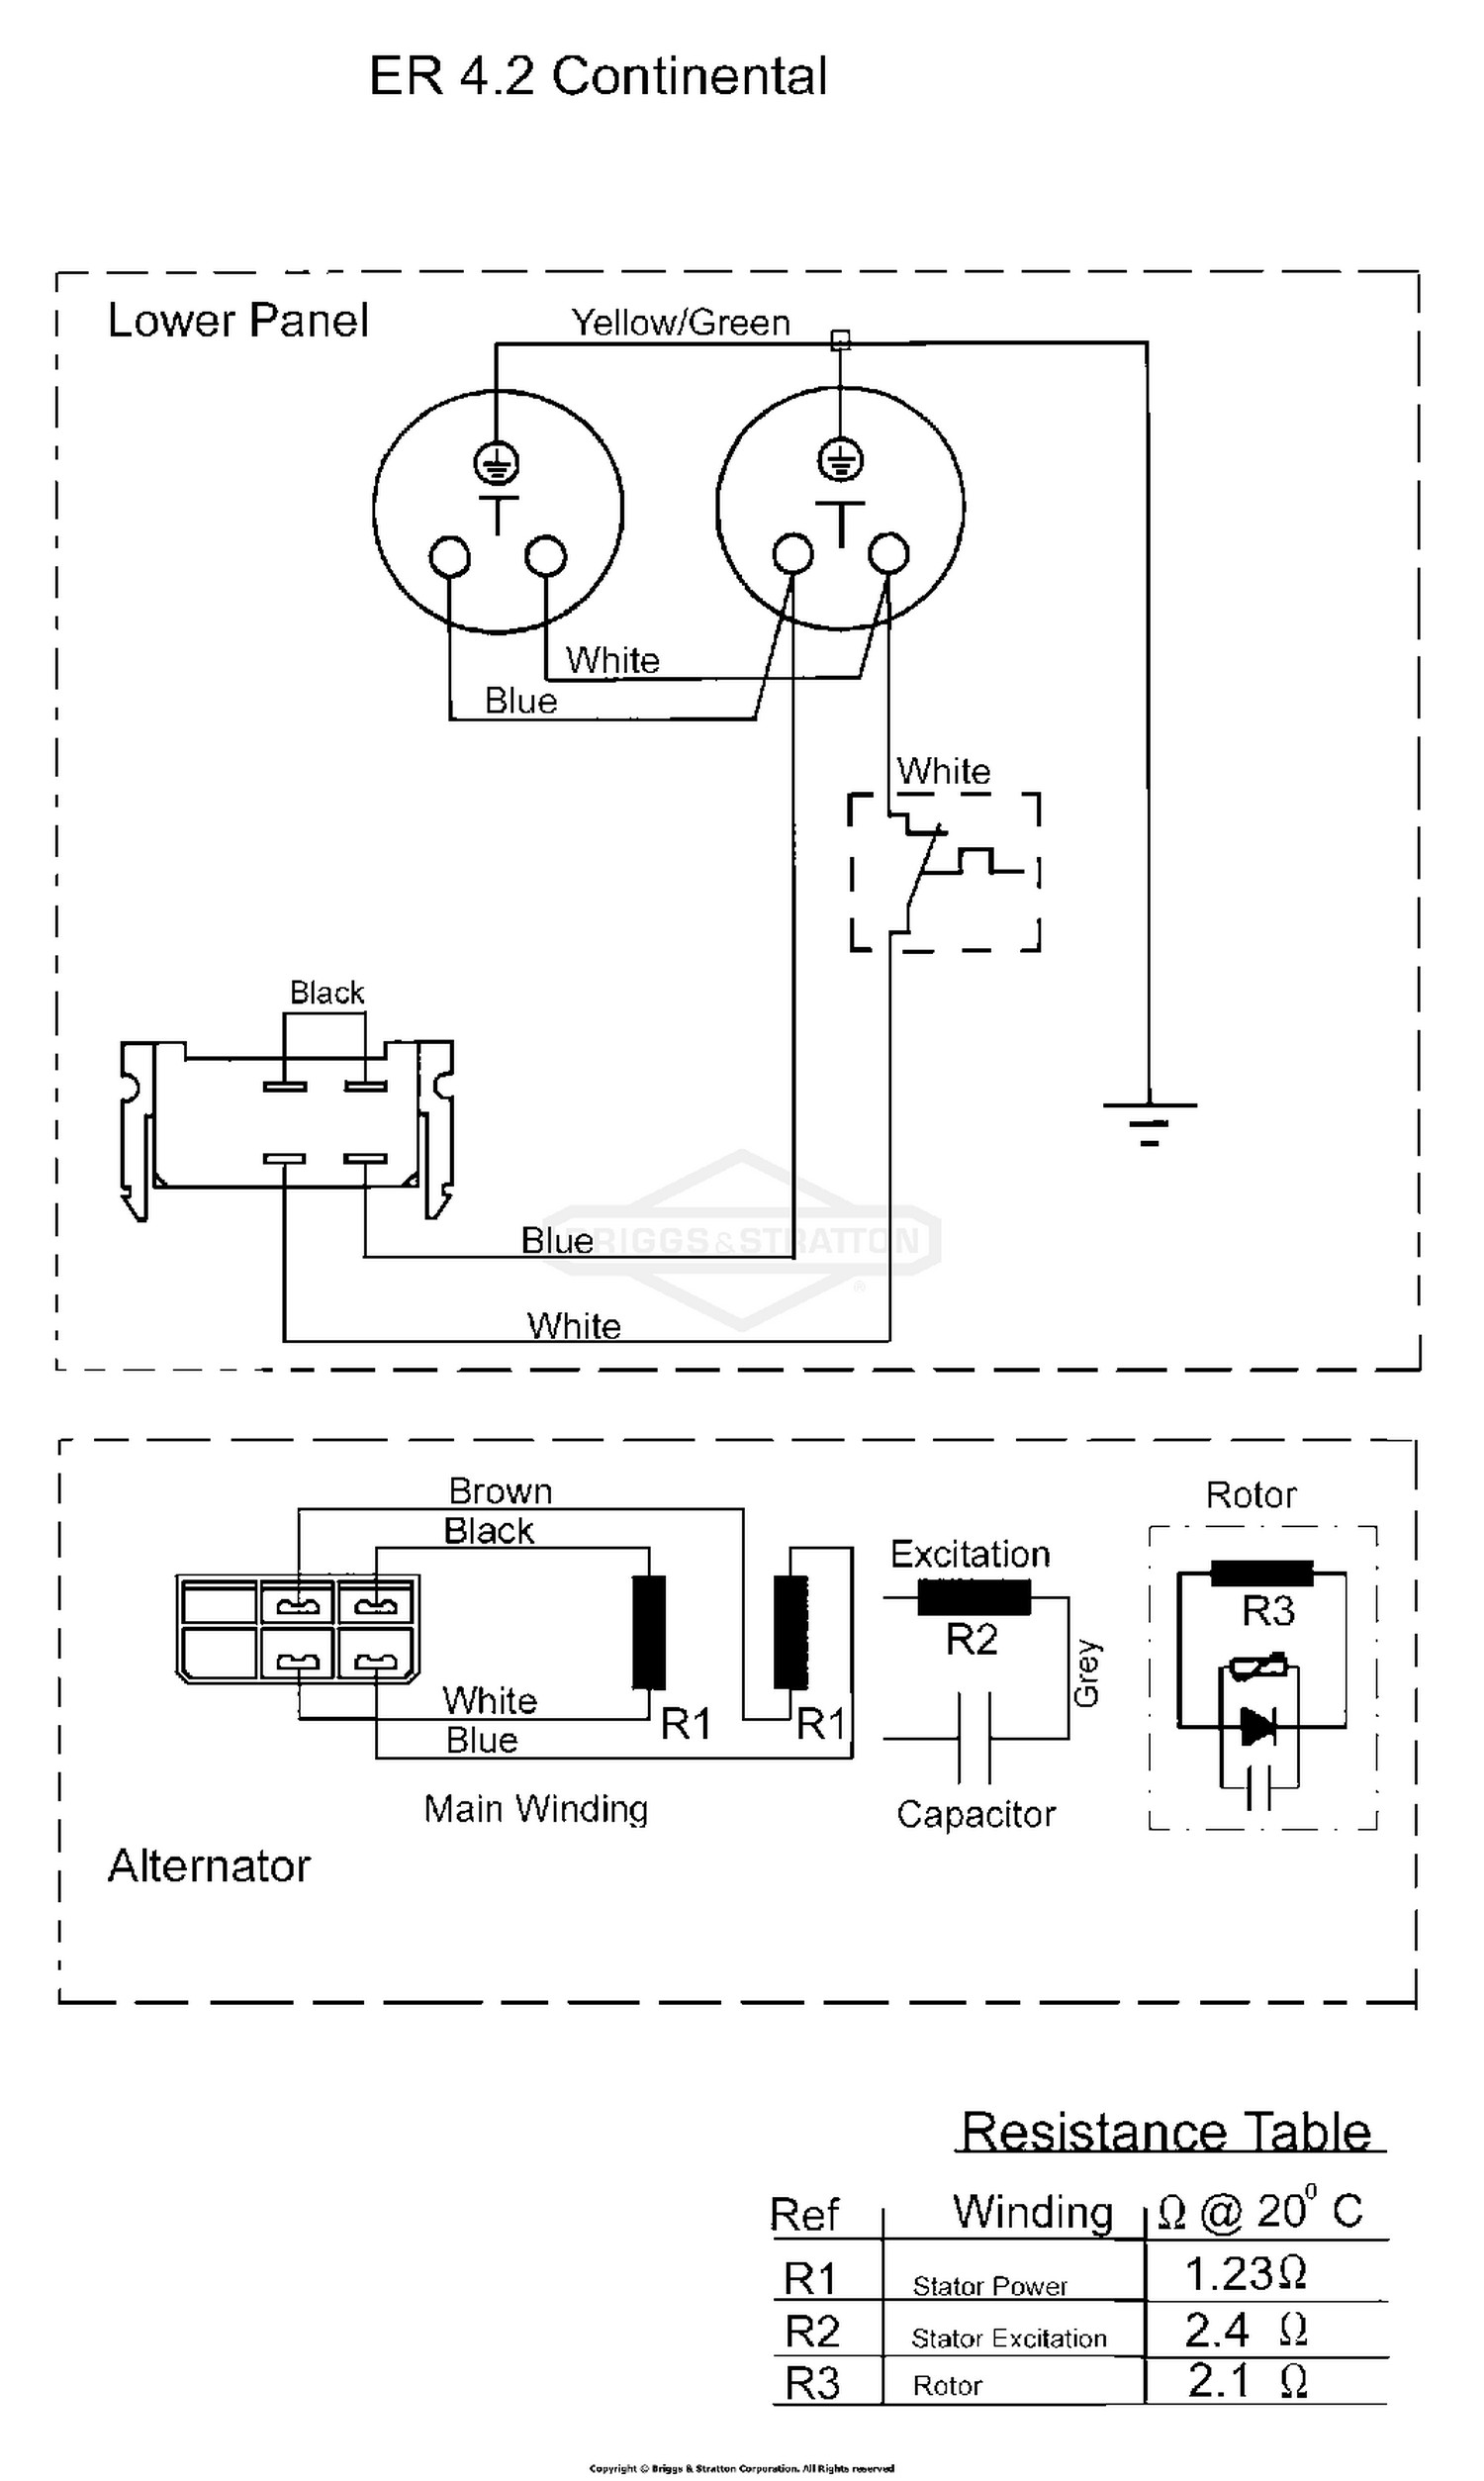 Briggs and Stratton Alternator Wiring Diagram Kf 6412] Briggs and Stratton Stator Wiring Diagram Download